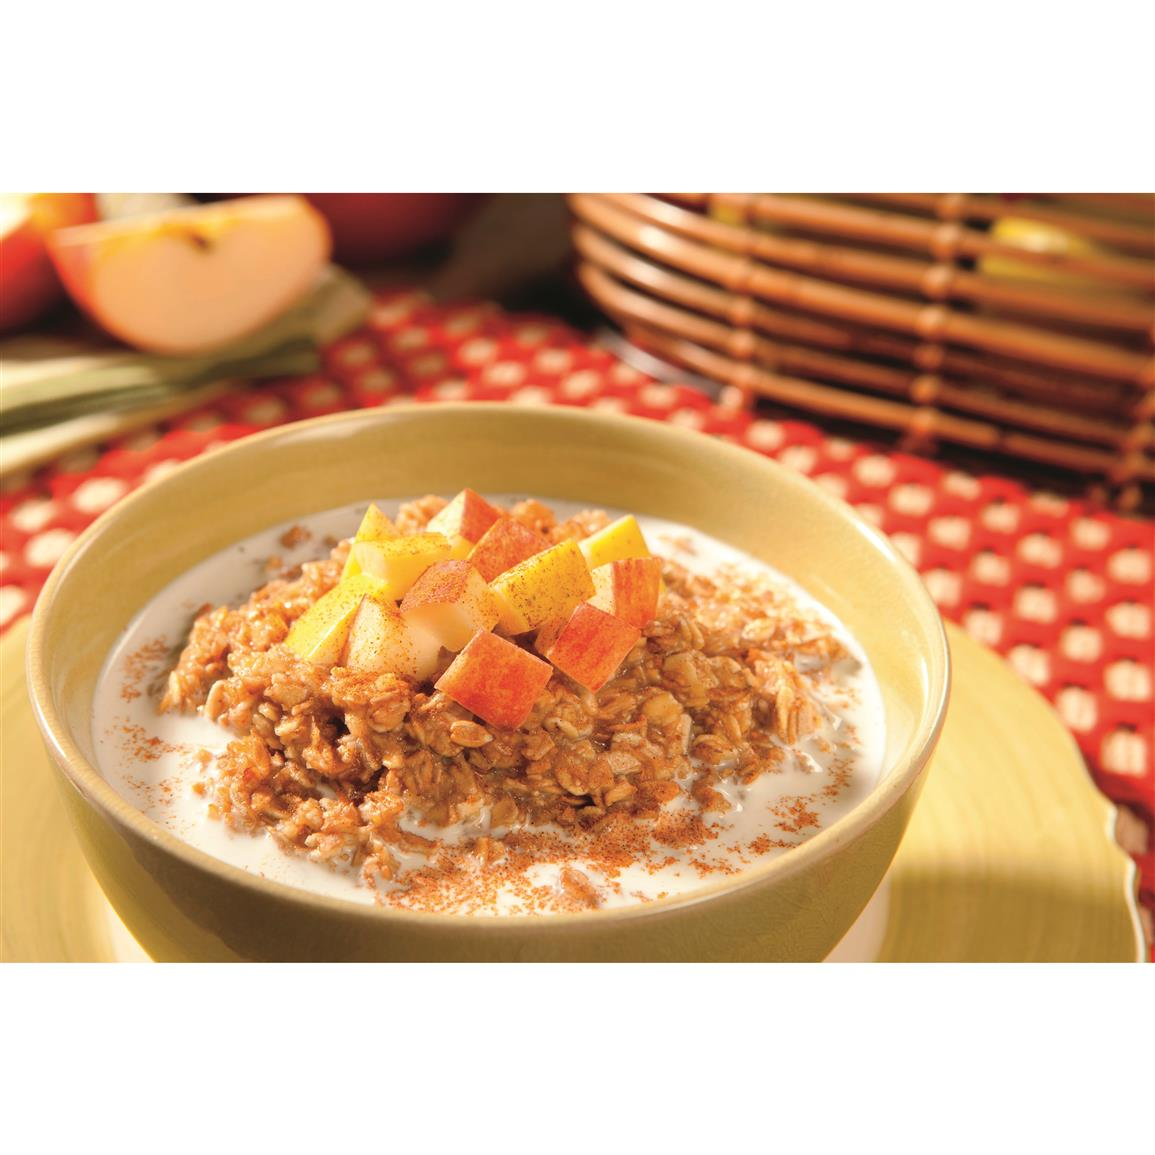 Apple cinnamon cereal